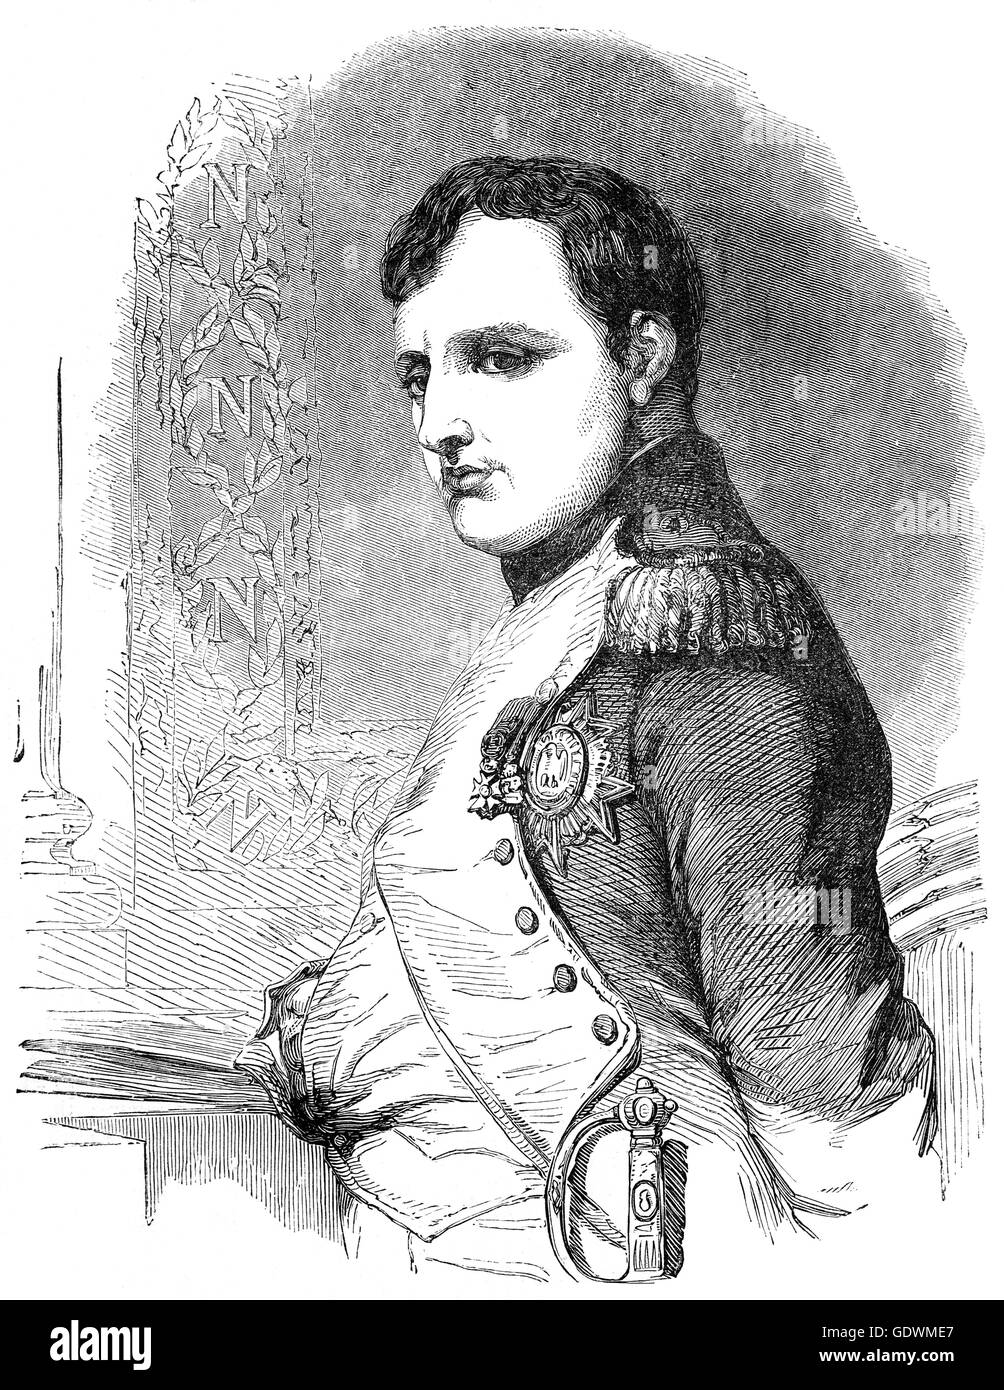 Napoléon Bonaparte(1769 – 1821) was a French military and political leader who rose to prominence during the - Stock Image